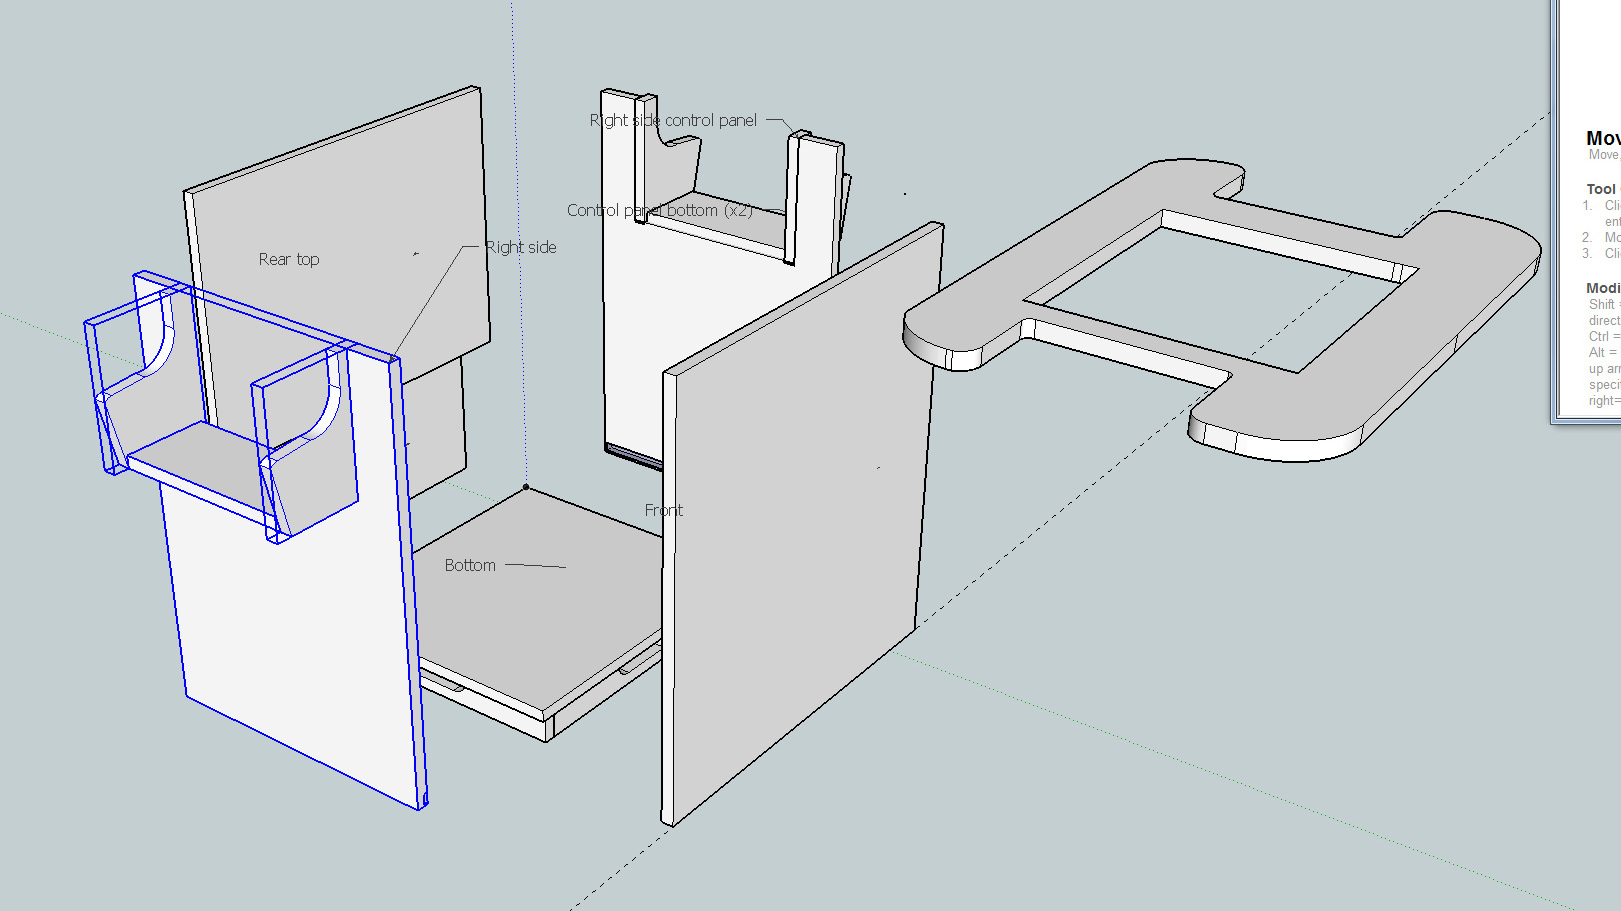 Designing A Custom Arcade Cabinet In Sketchup Tested